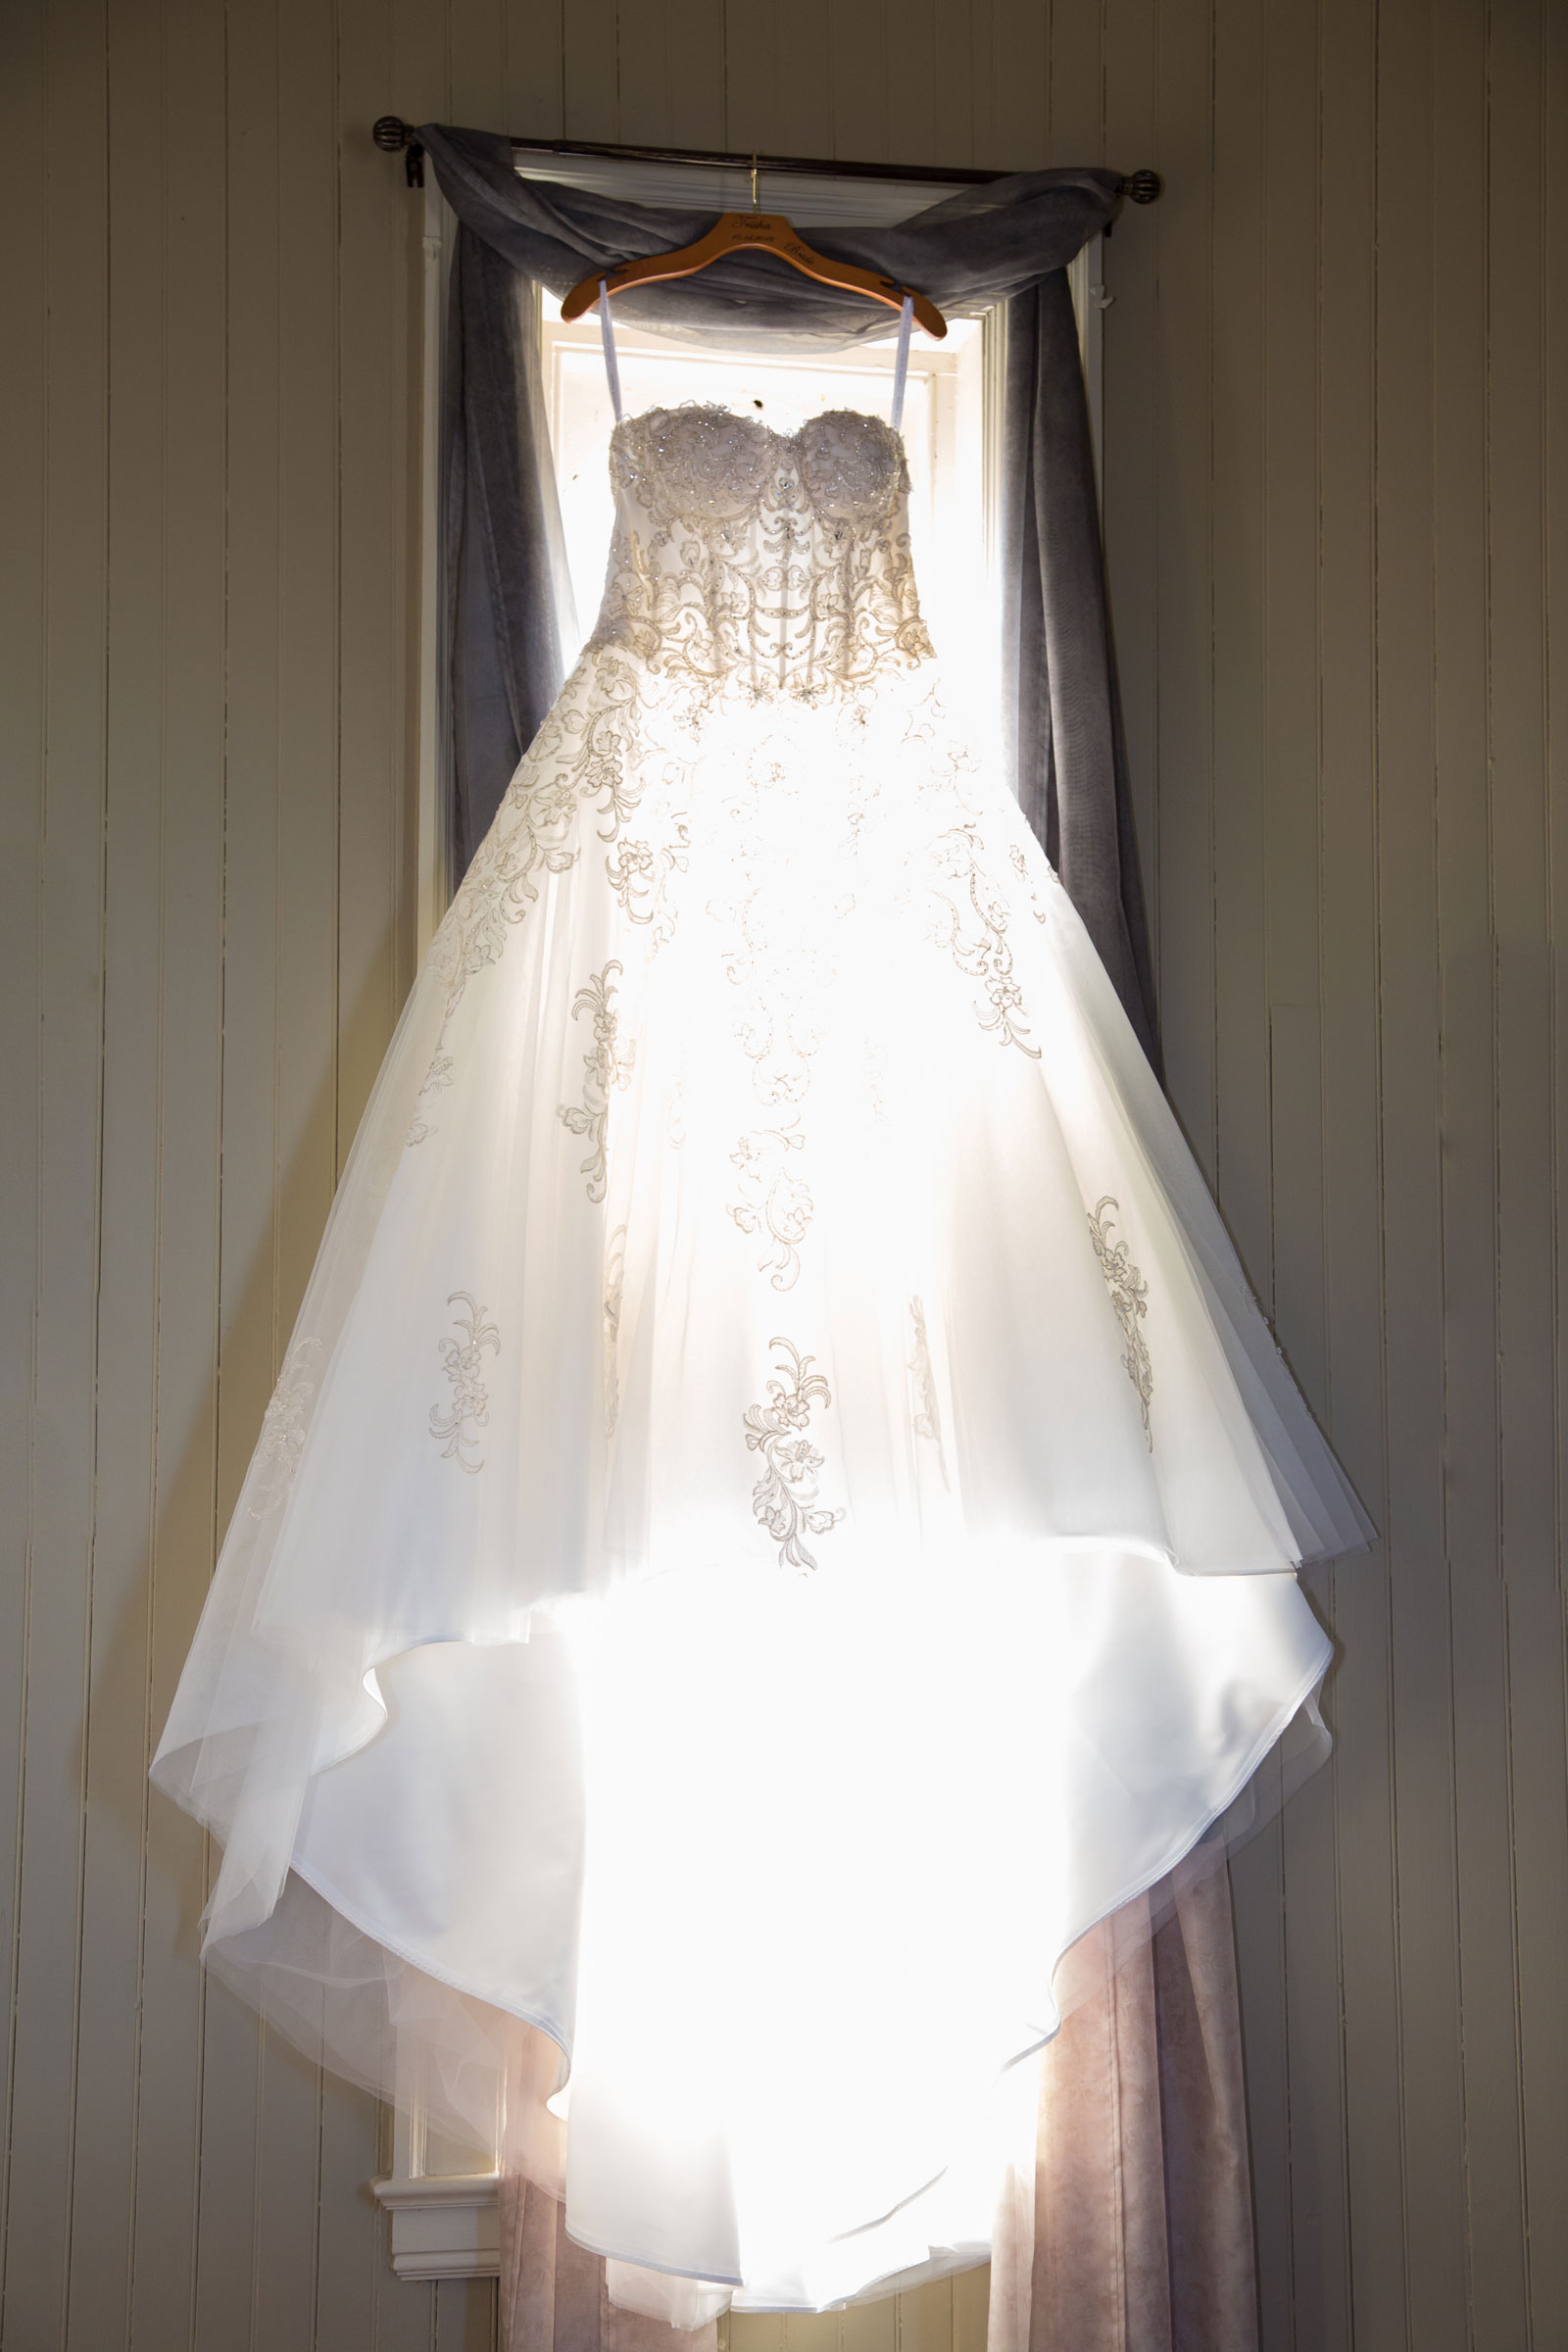 Lackawanna, NY Wedding dress hanging